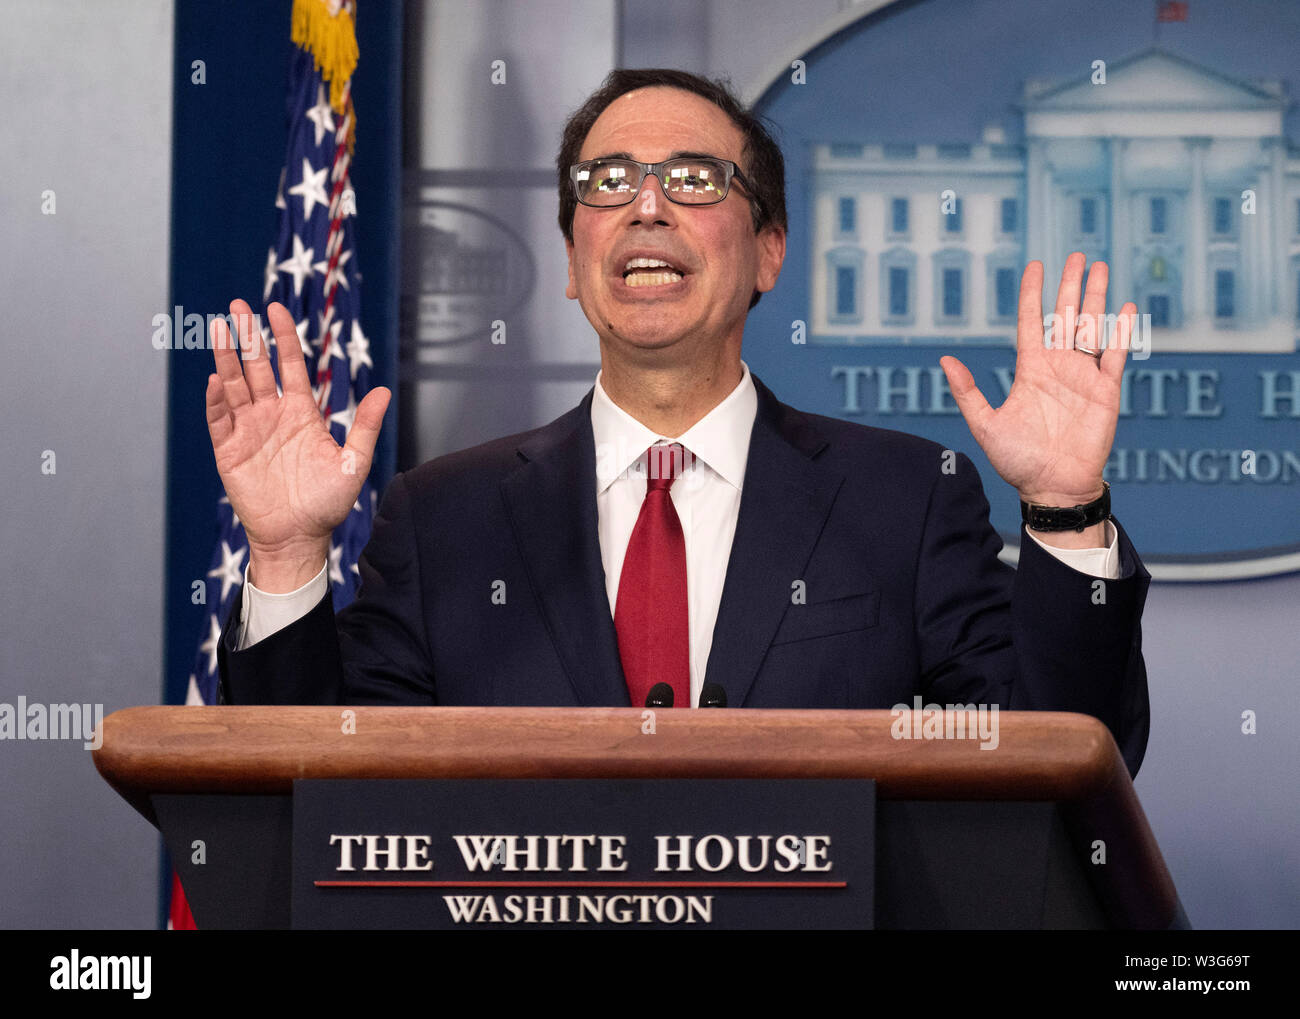 United States Secretary of the Treasury Steven T. Mnuchin gestures as he holds a press briefing in the Brady Press Briefing Room of the White House in Washington, DC on Monday, July 15, 2019. Sec. Mnuchin was discussing digital assets, including cryptocurrency, such as Bitcoin or Libra.Credit: Ron Sachs/CNP /MediaPunch - Stock Image